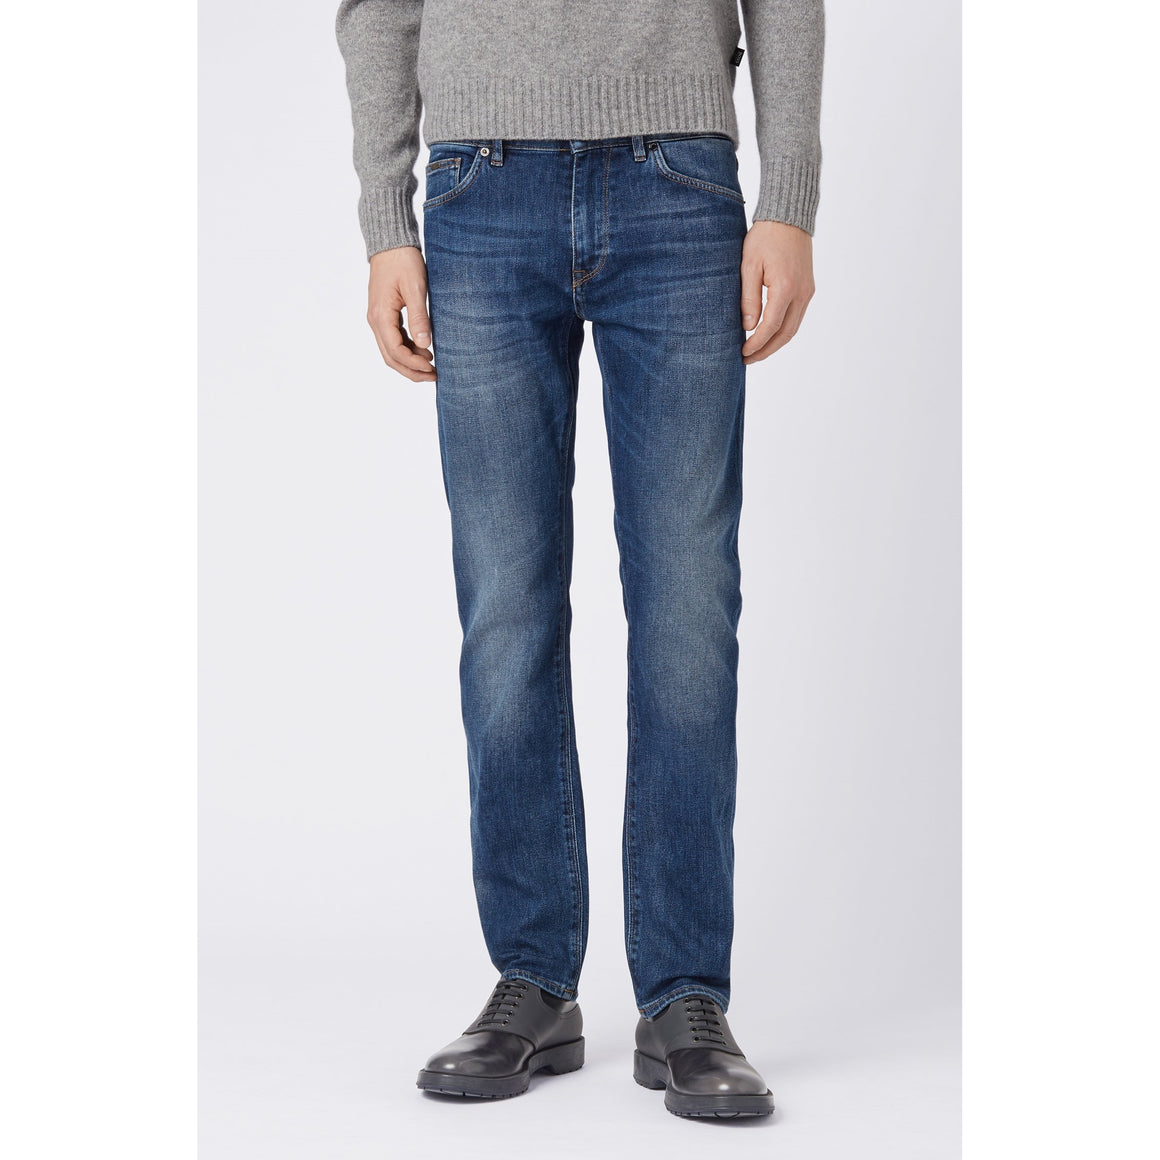 Maine Jeans for Men in Midwash